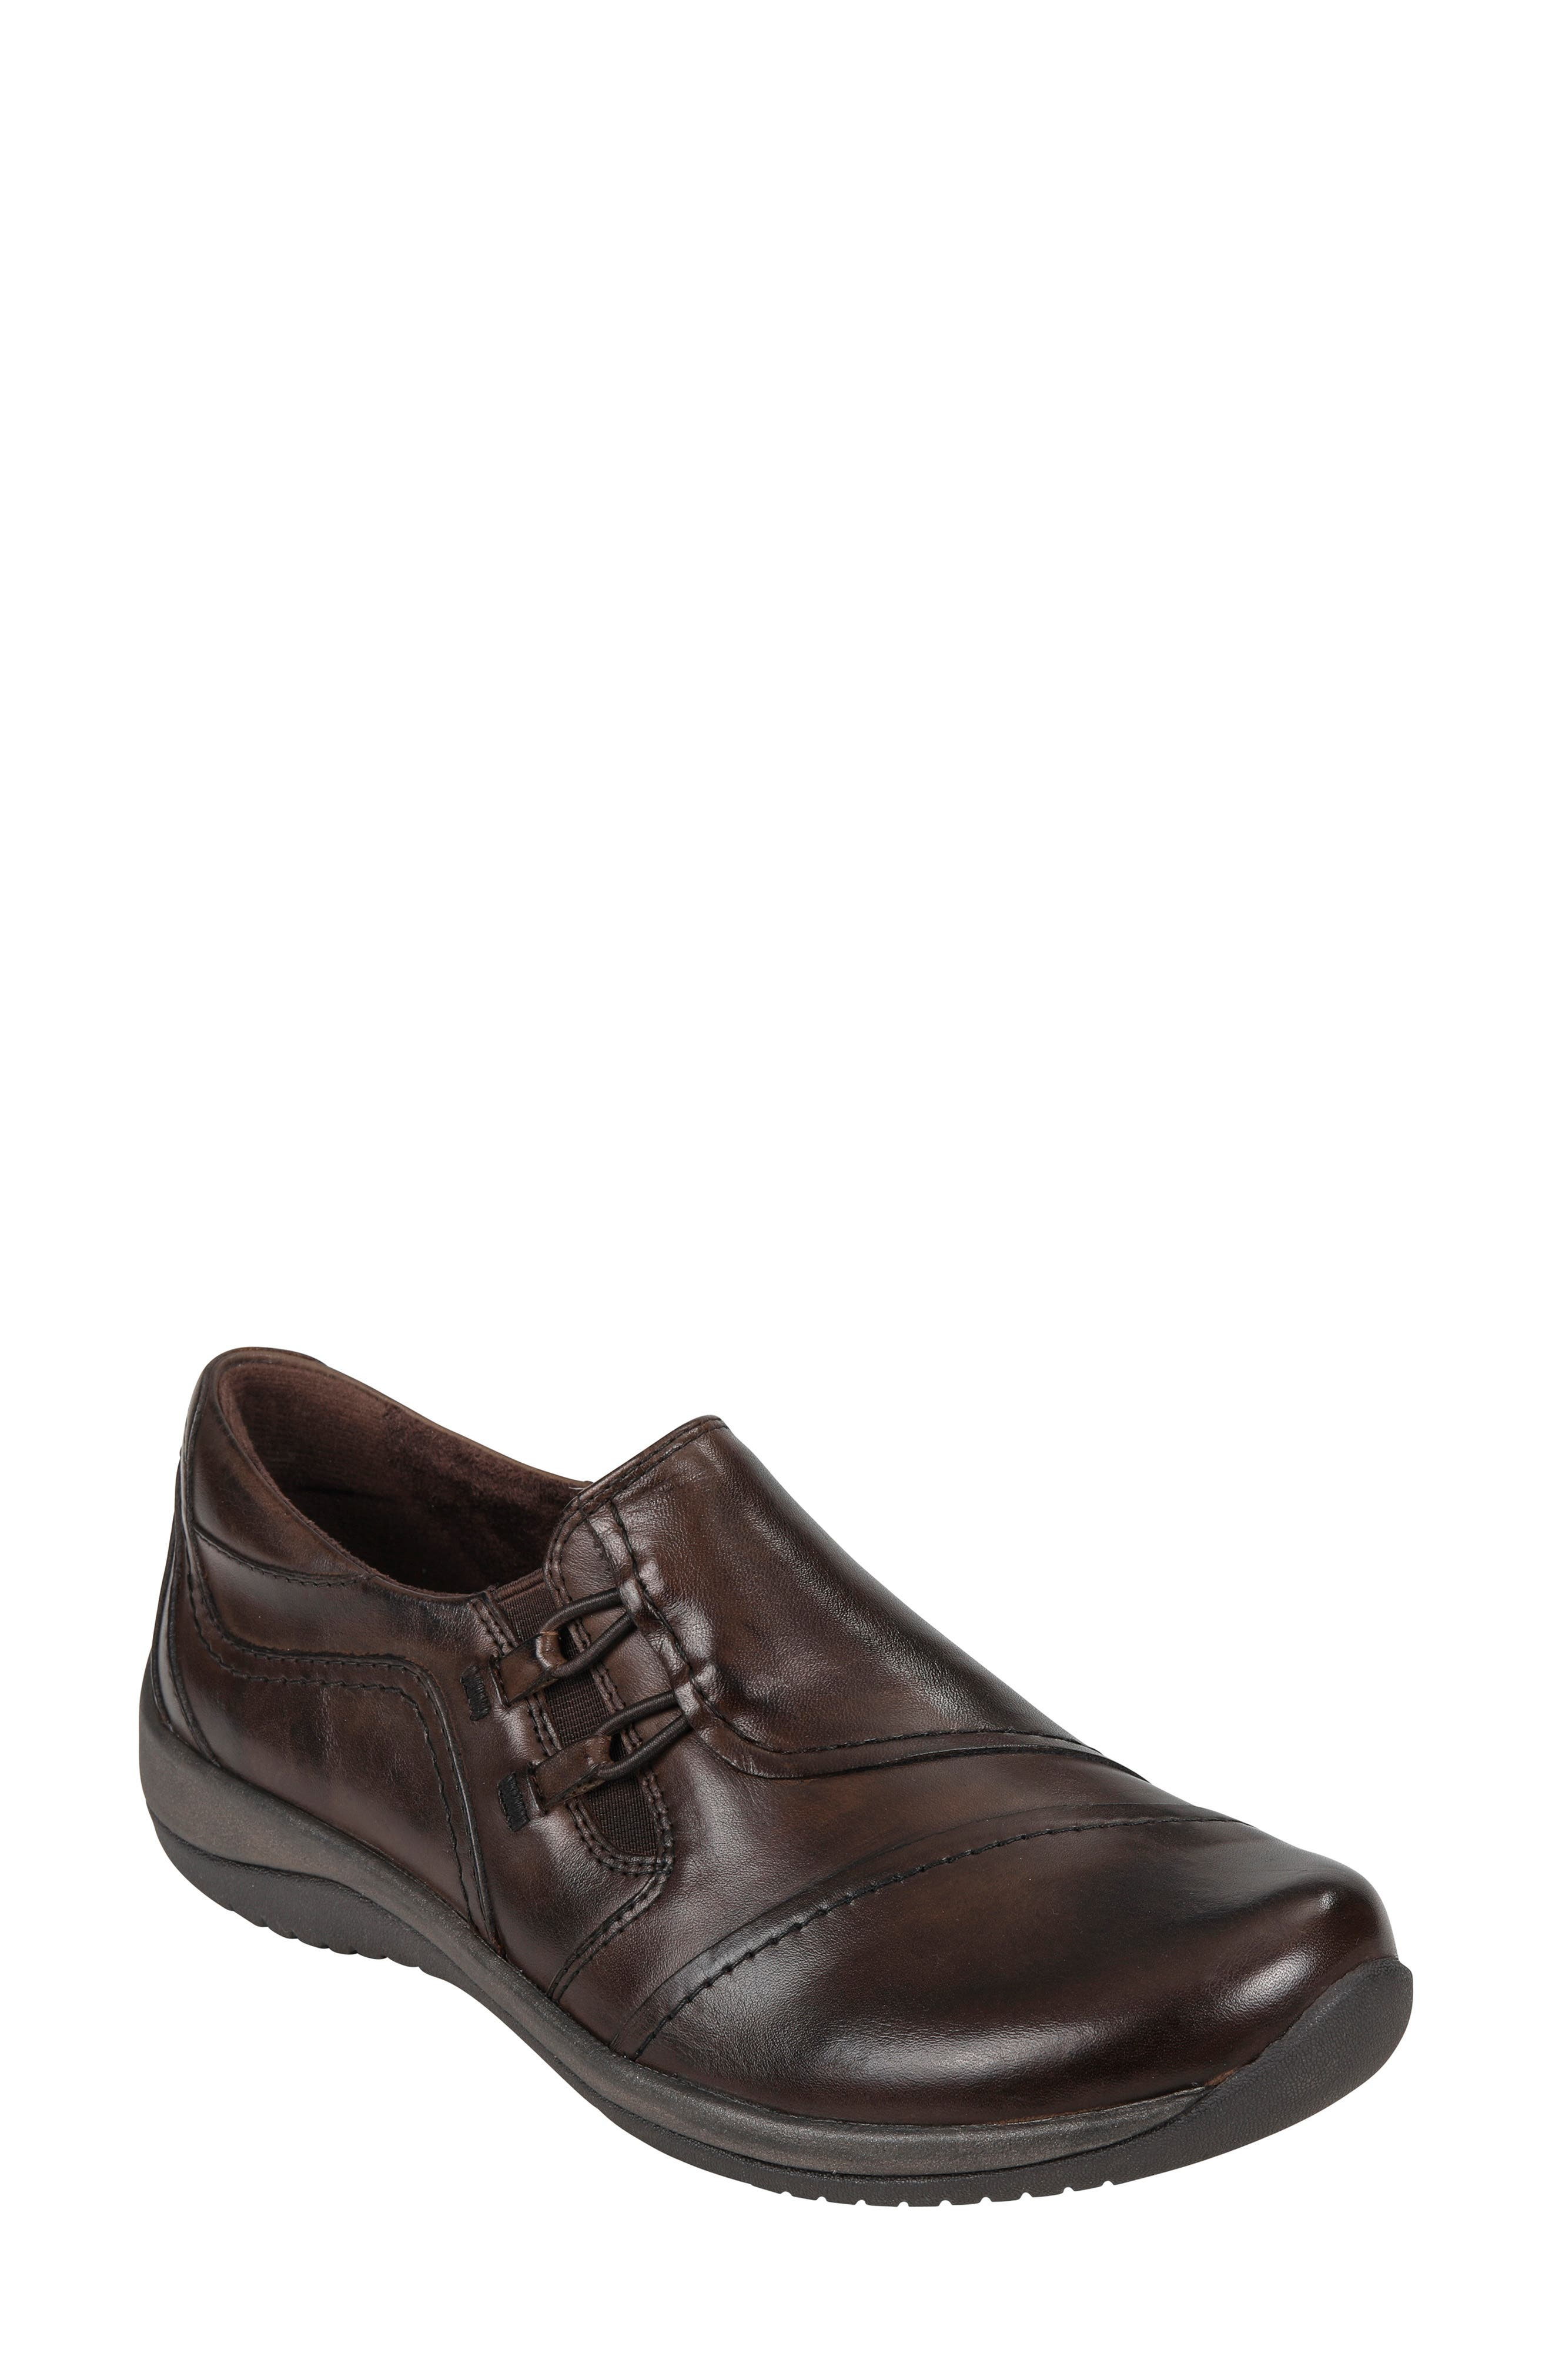 Earth Hawk Loafer, Brown